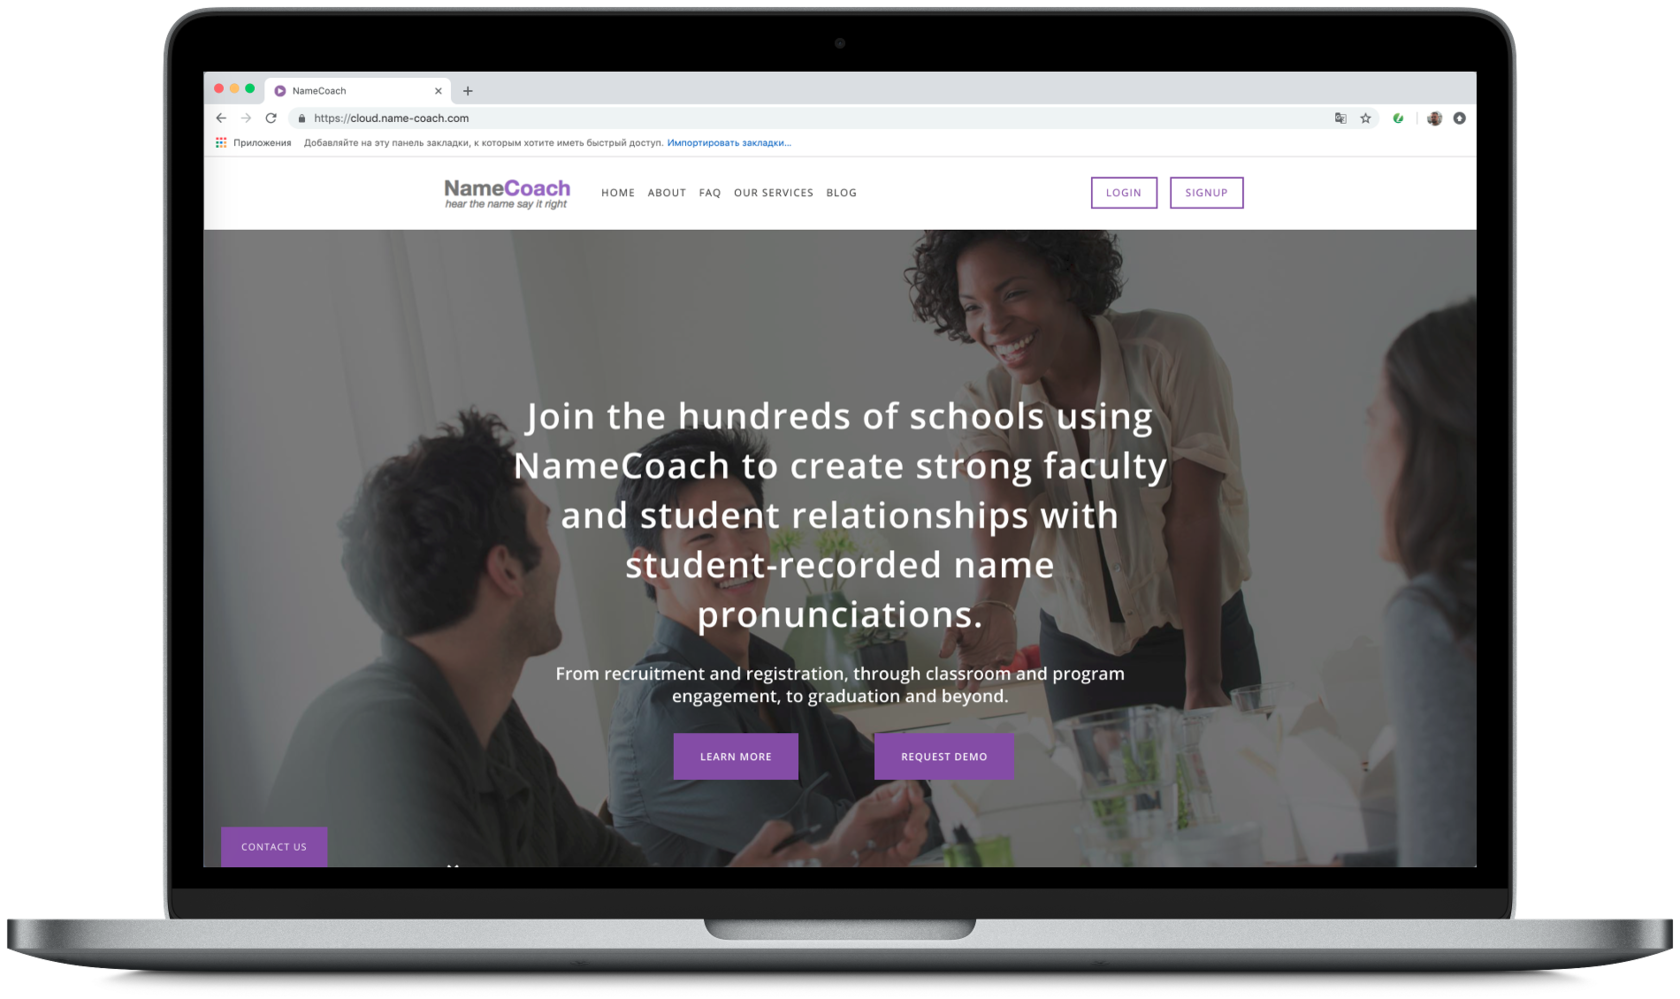 namecoach ruby on rails developers expertise